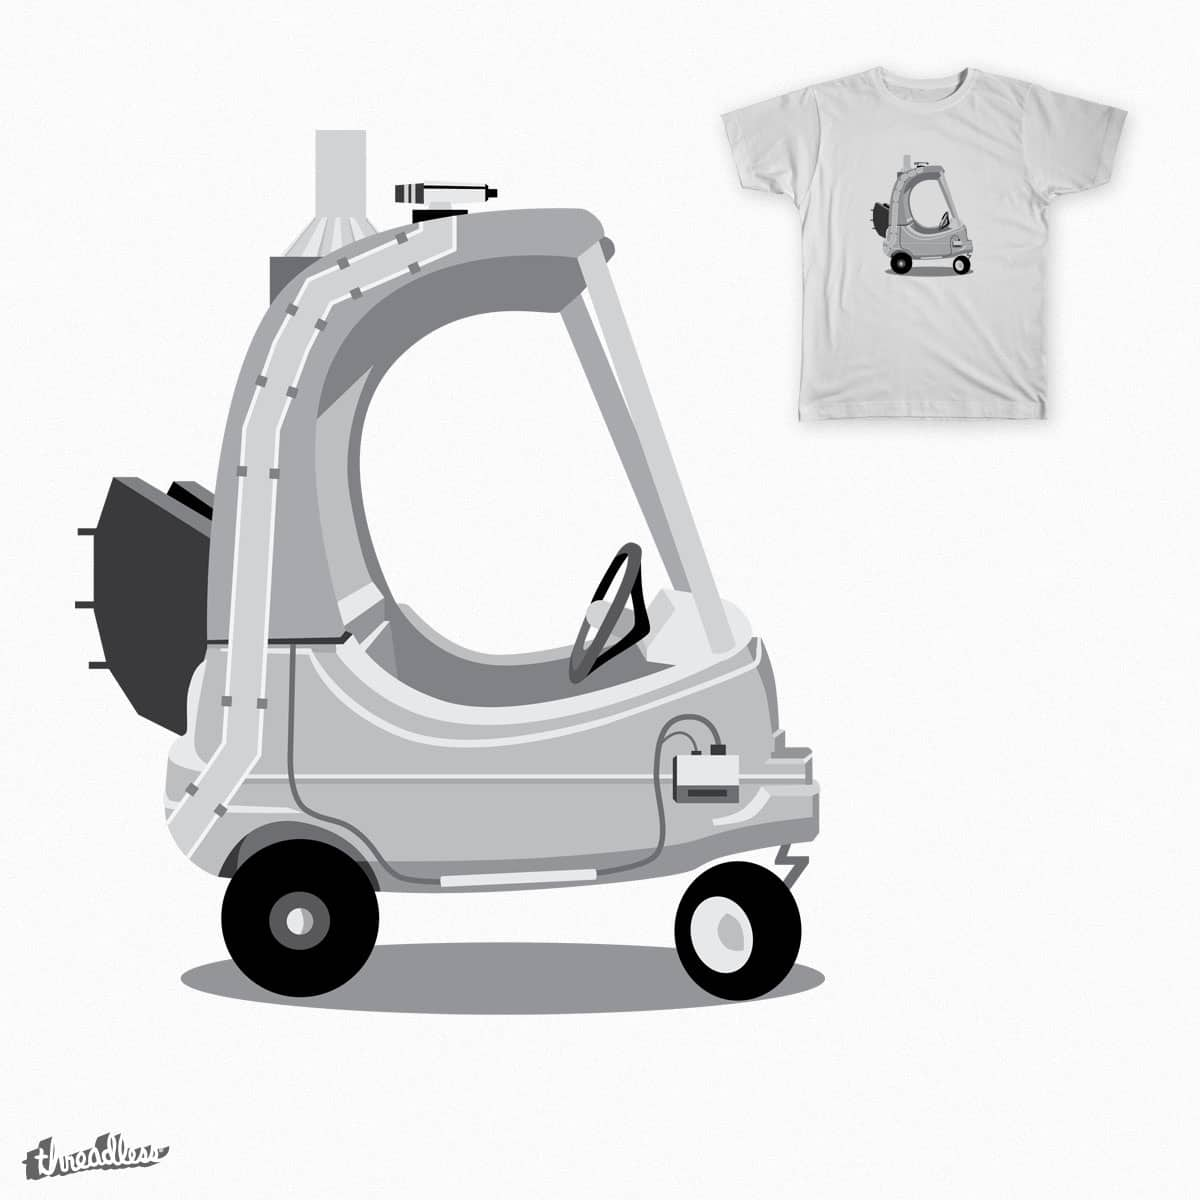 Time Travel Kid by robthebarber7 on Threadless